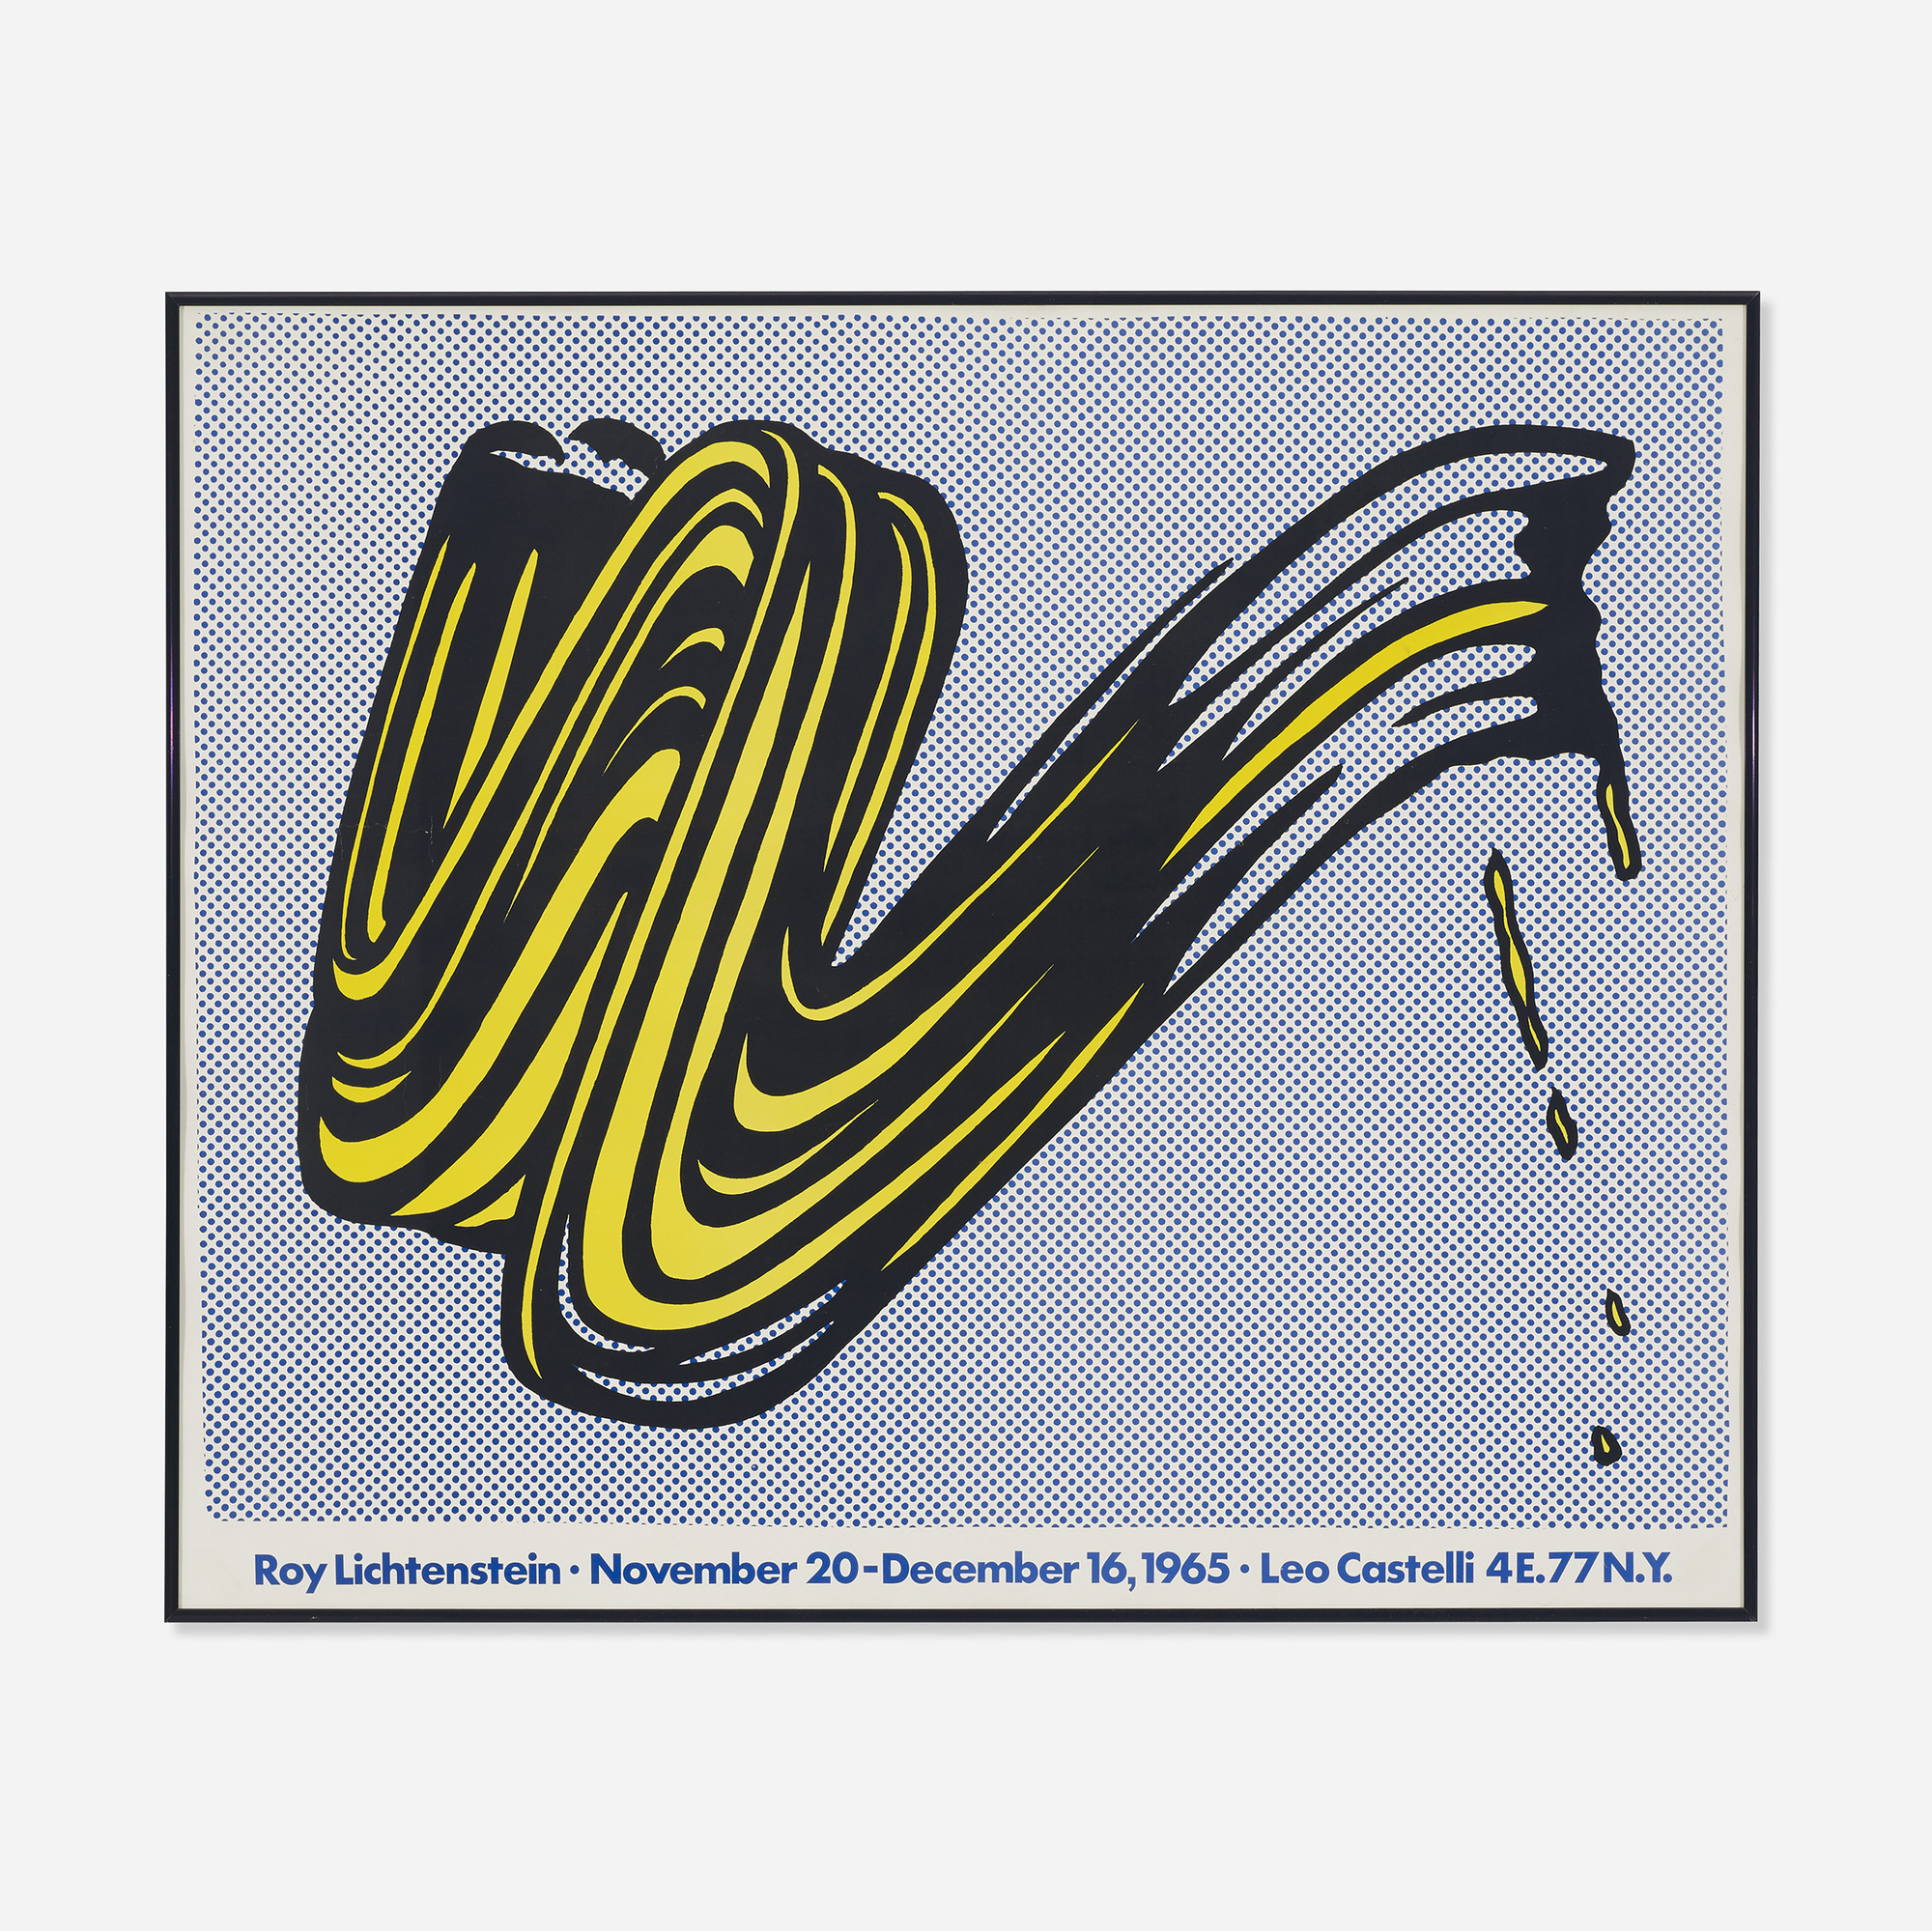 429: ROY LICHTENSTEIN, poster for exhibition with Leo Castelli ...